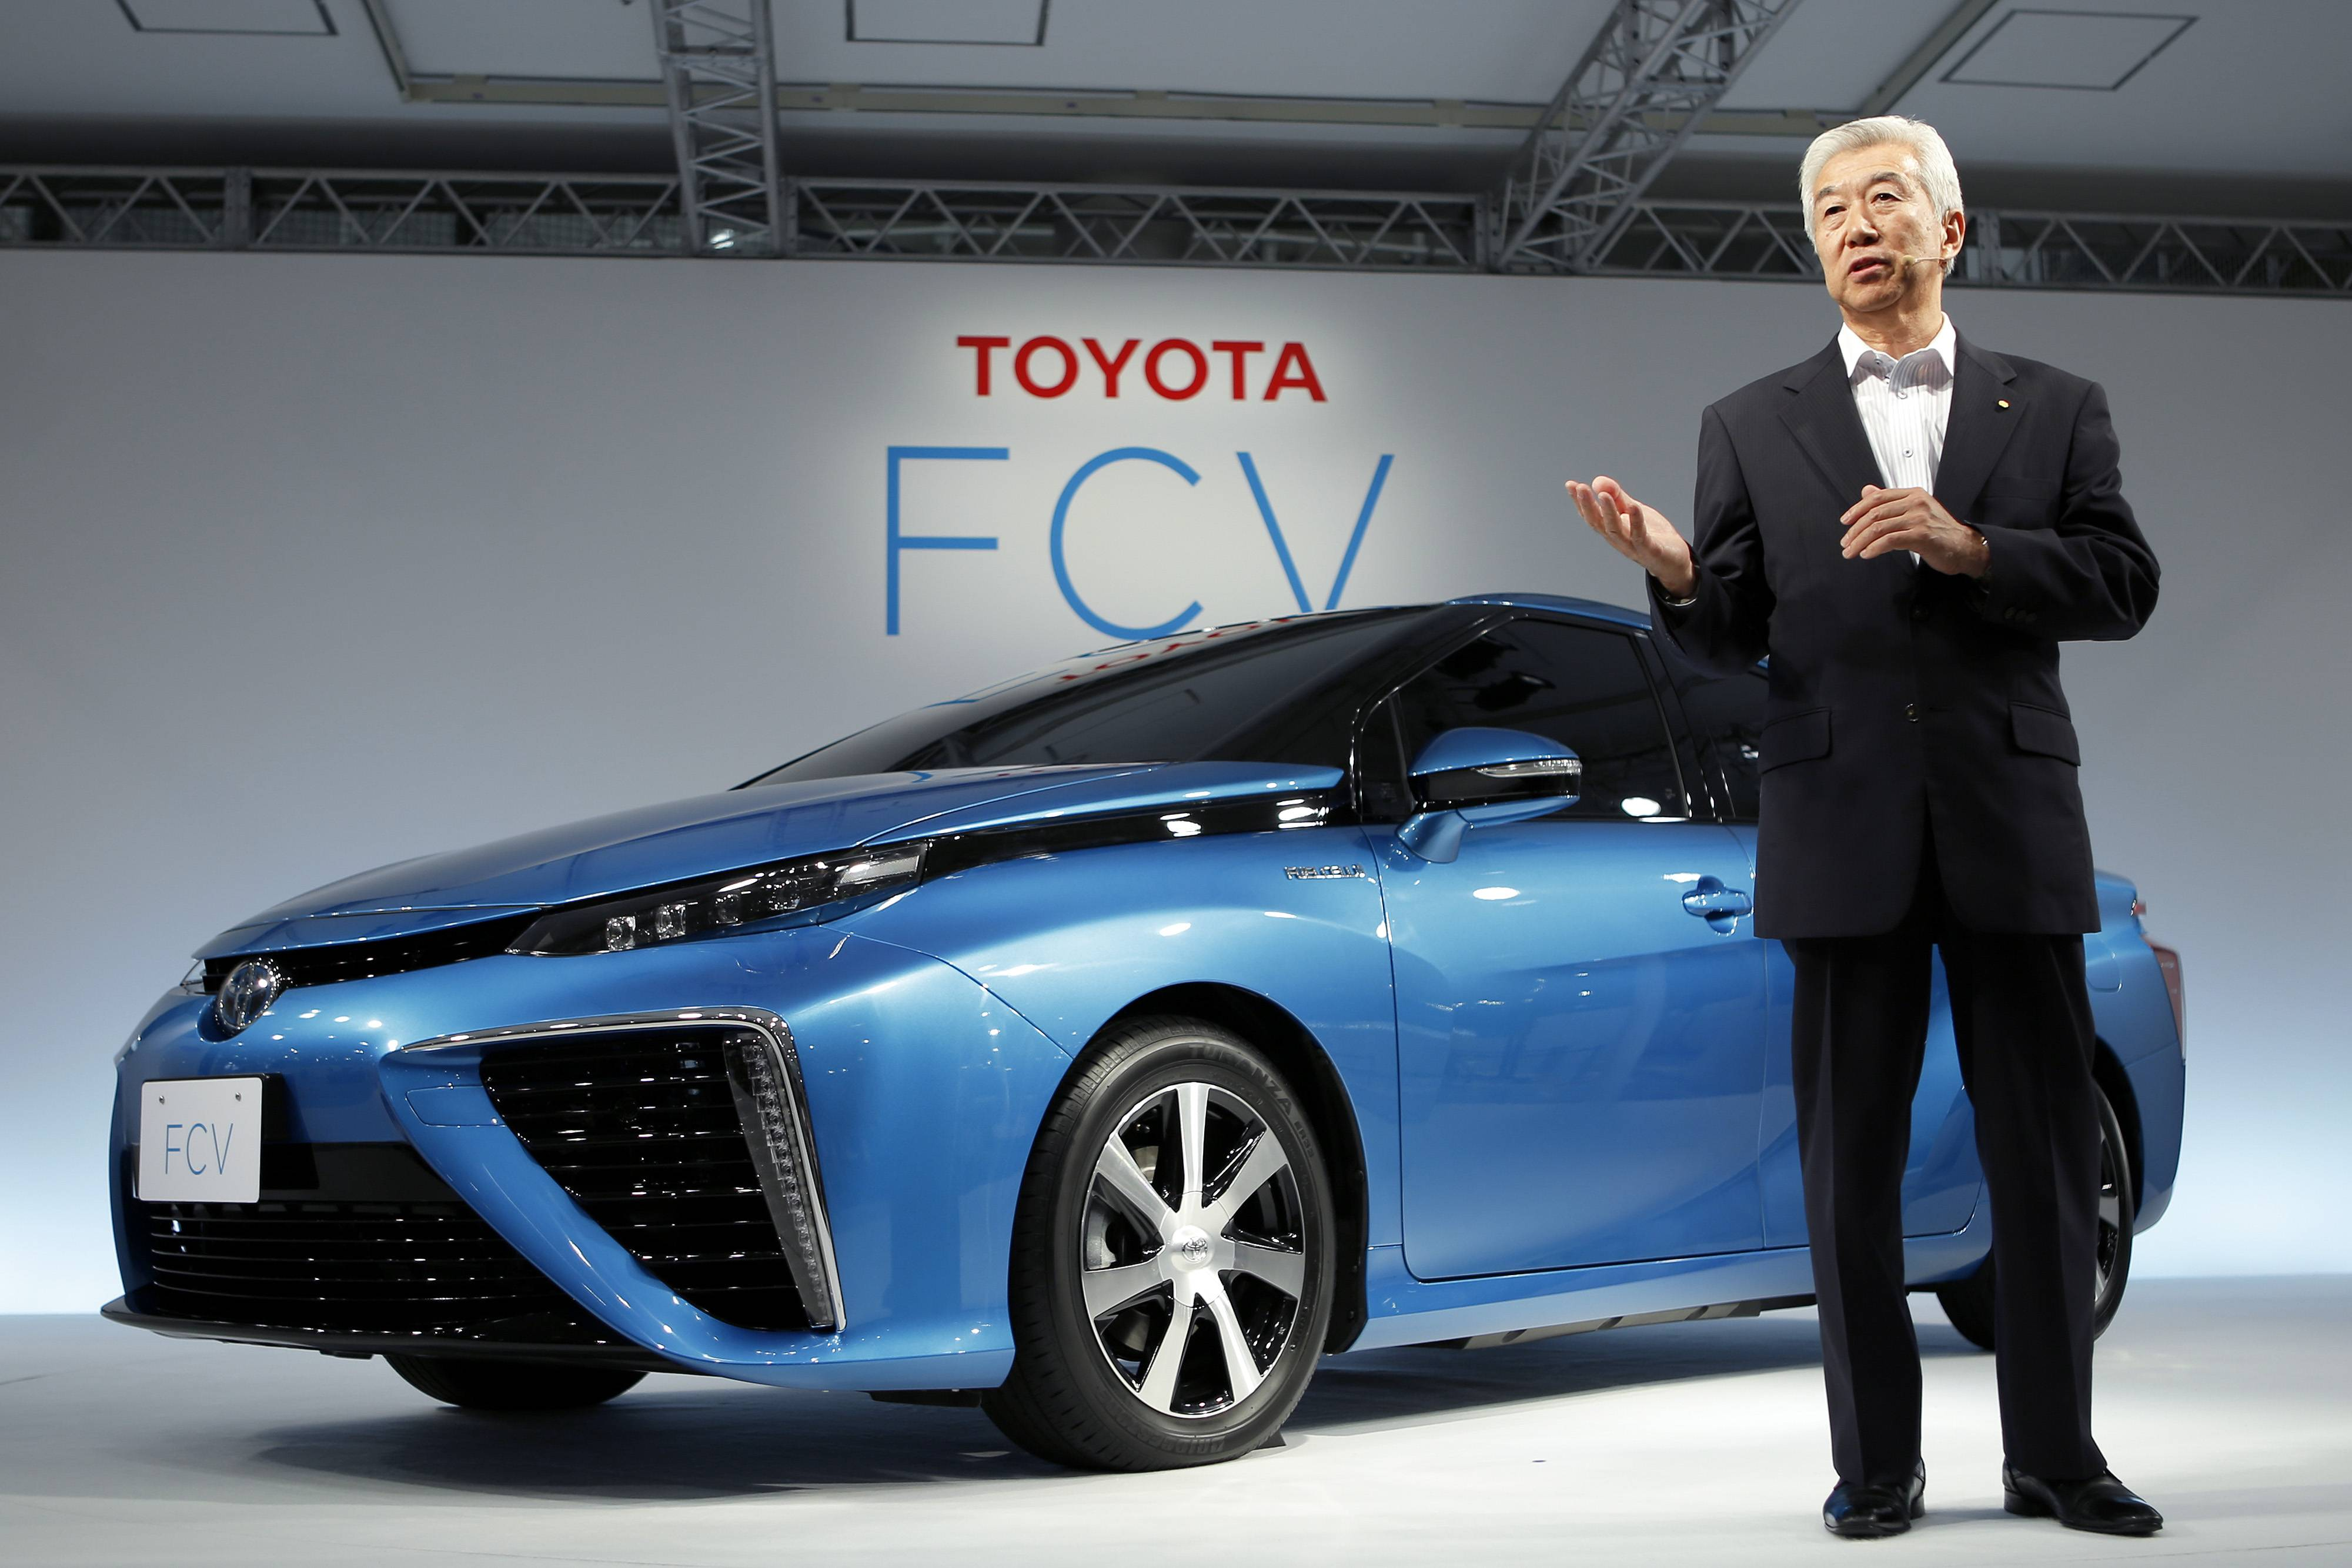 Mitsuhisa Kato, executive vice president at Toyota Motor Corp., speaks as he introduces the company's fuel-cell vehicle (FCV) during a news conference in Tokyo Wednesday.